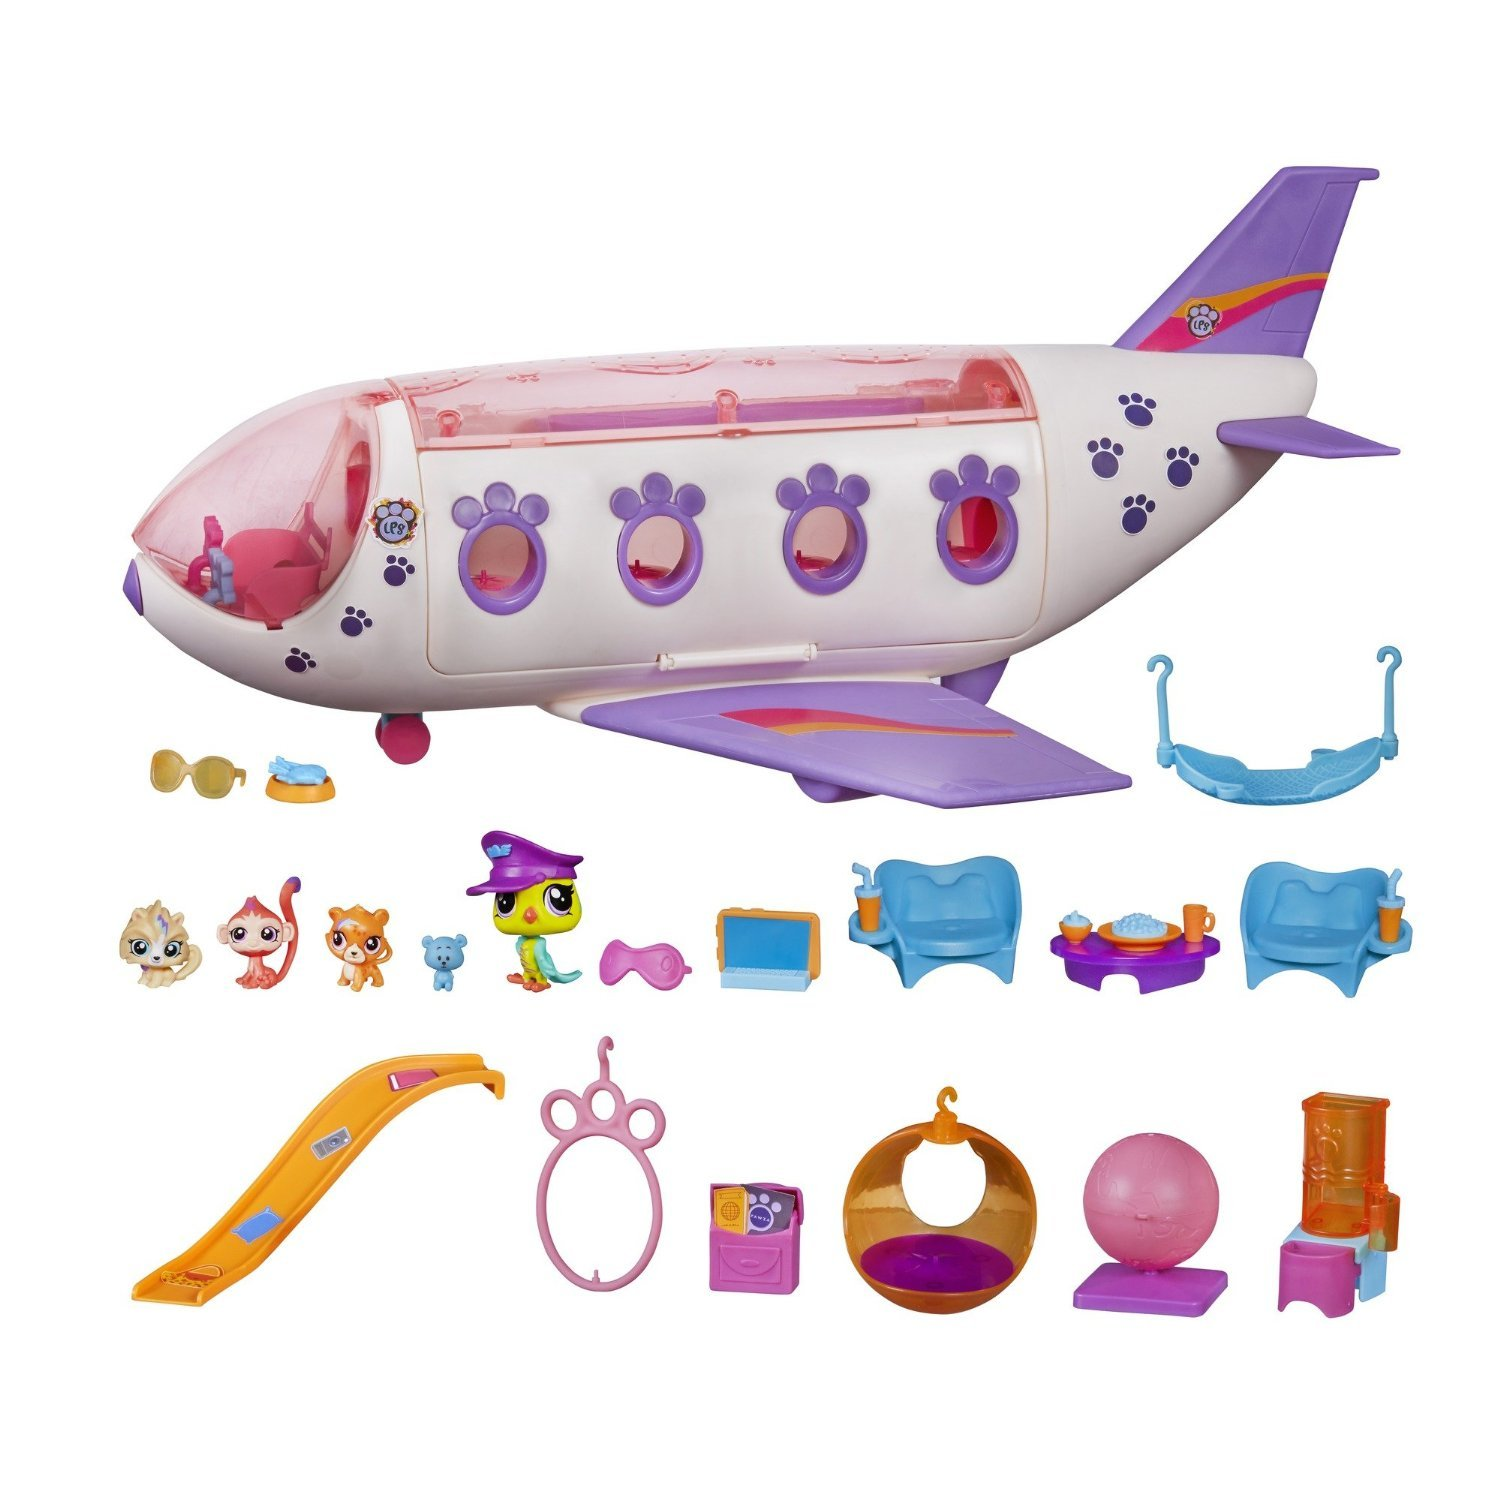 Littlest Pet Shop Jet Playset, Includes 4 Exclusive Pets, Ages 4 and up (Amazon Exclusive)